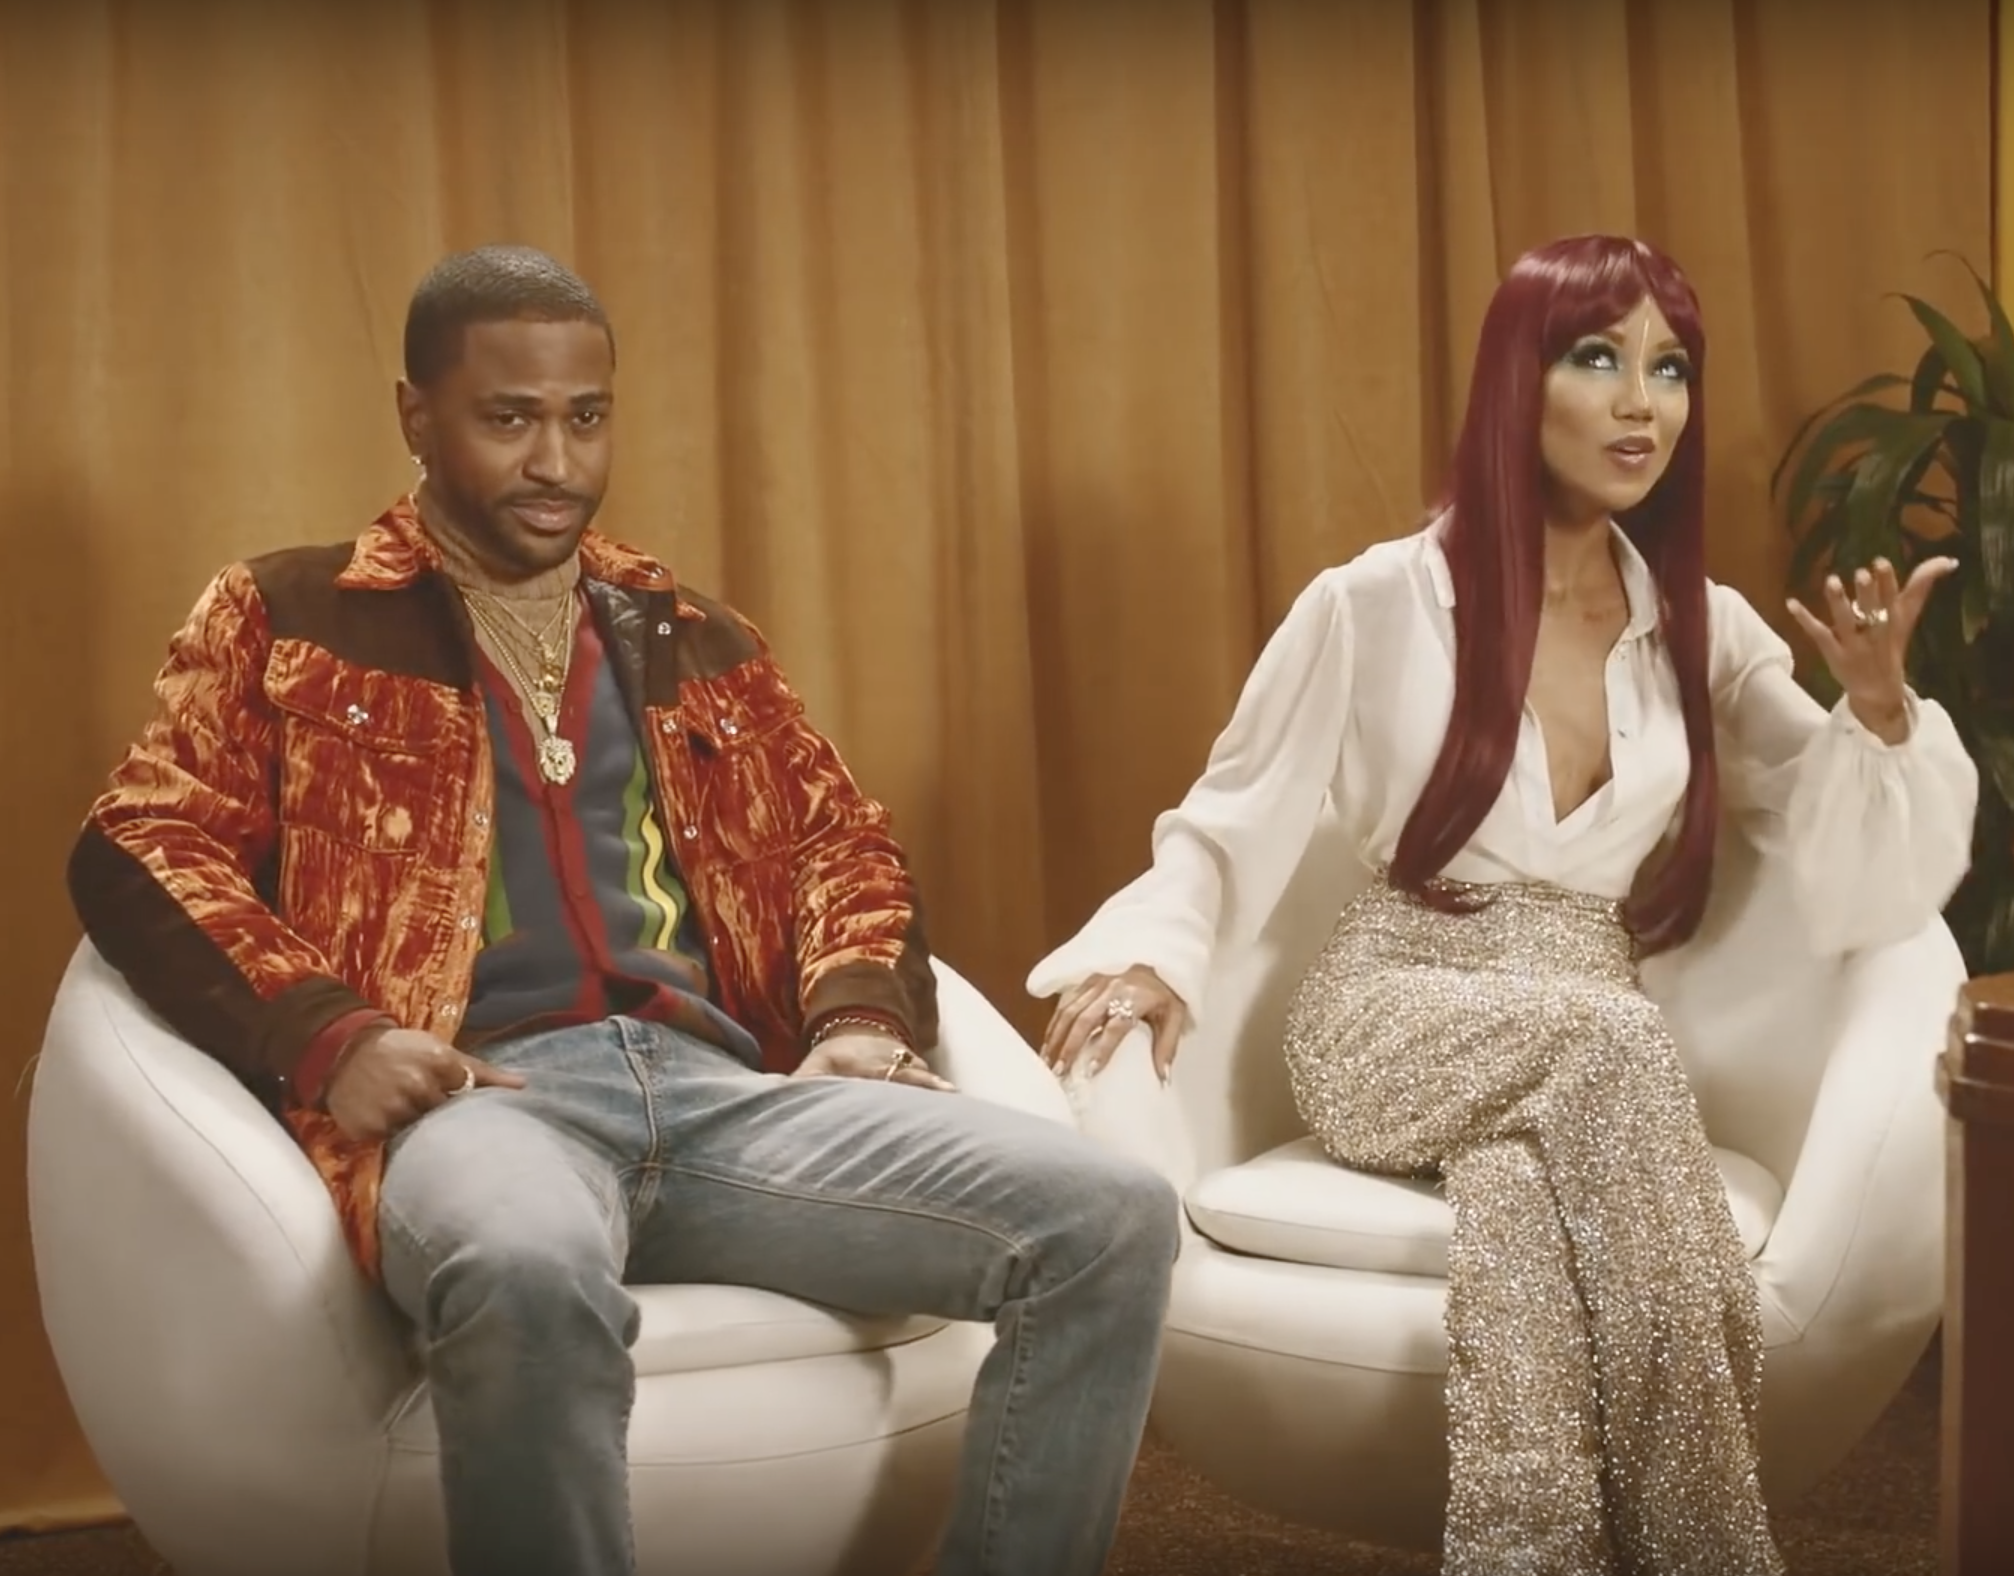 Big Sean And Jhene Aiko Give TMI On New Song! WHOA! - AllHipHop